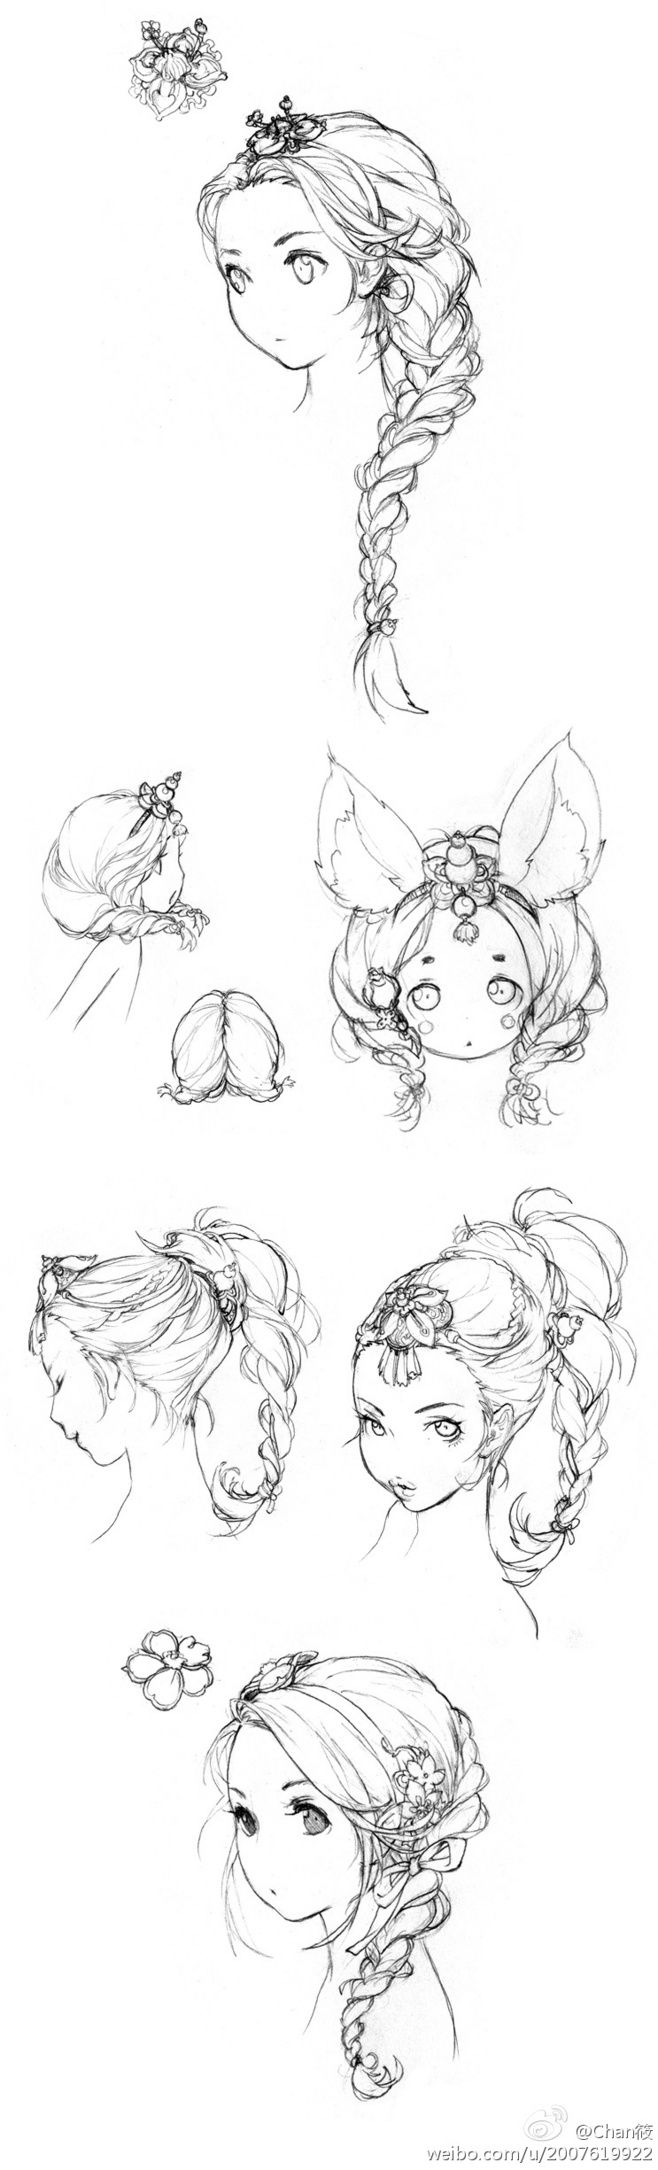 Some interesting and very detailed, elaborate hairstyles for female characters..... More